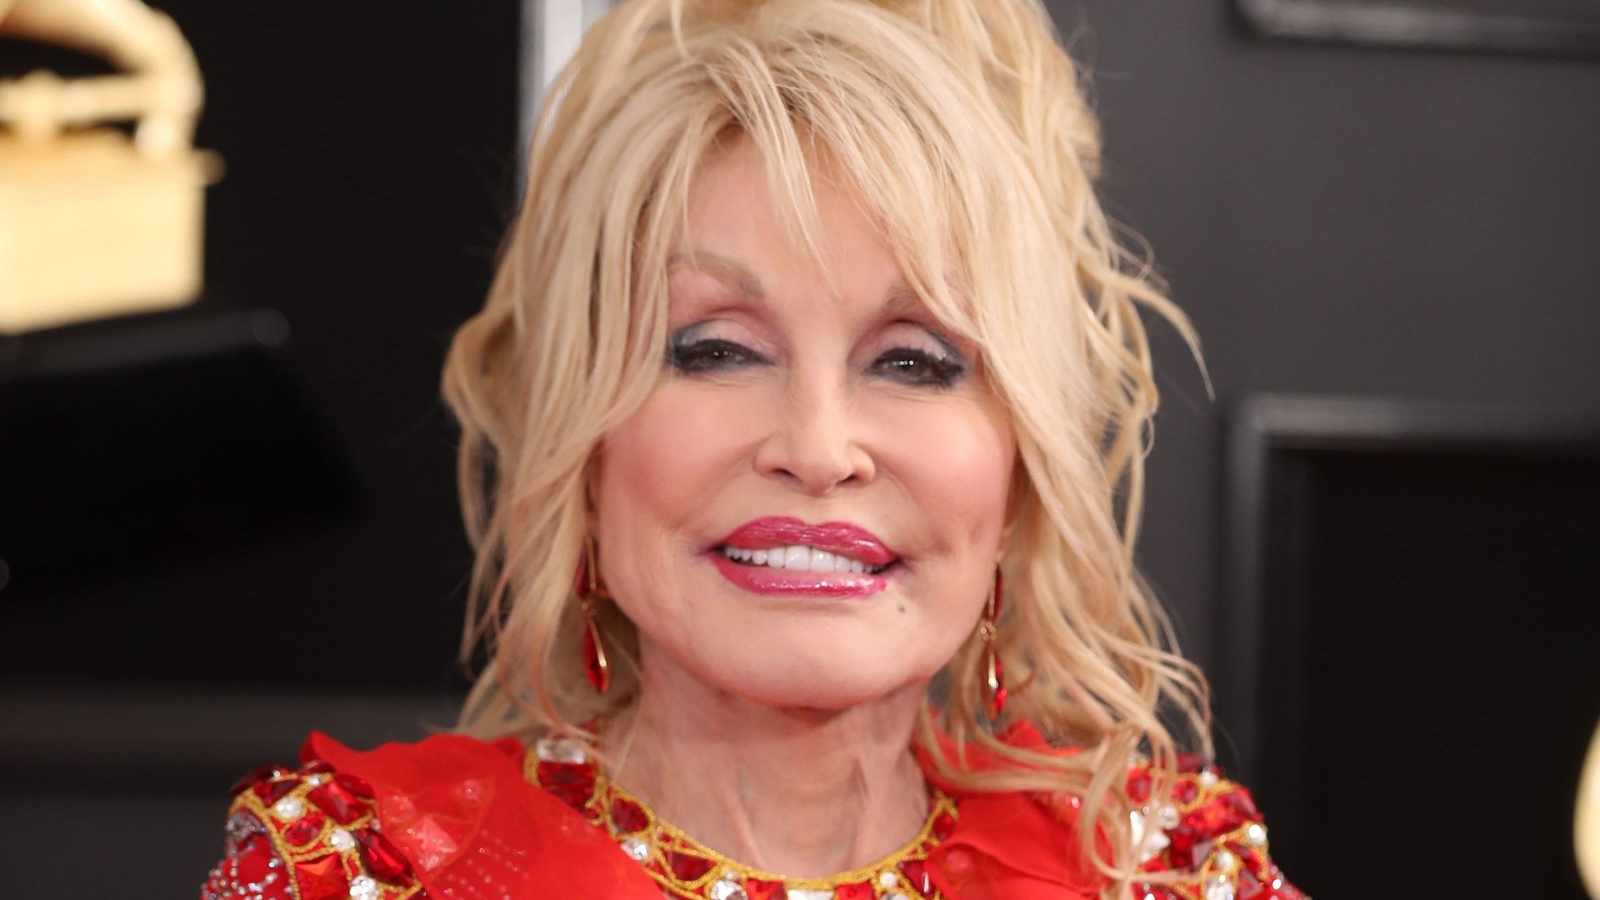 Dolly Parton donated R15.3m towards research for Moderna's Covid-19 vaccine